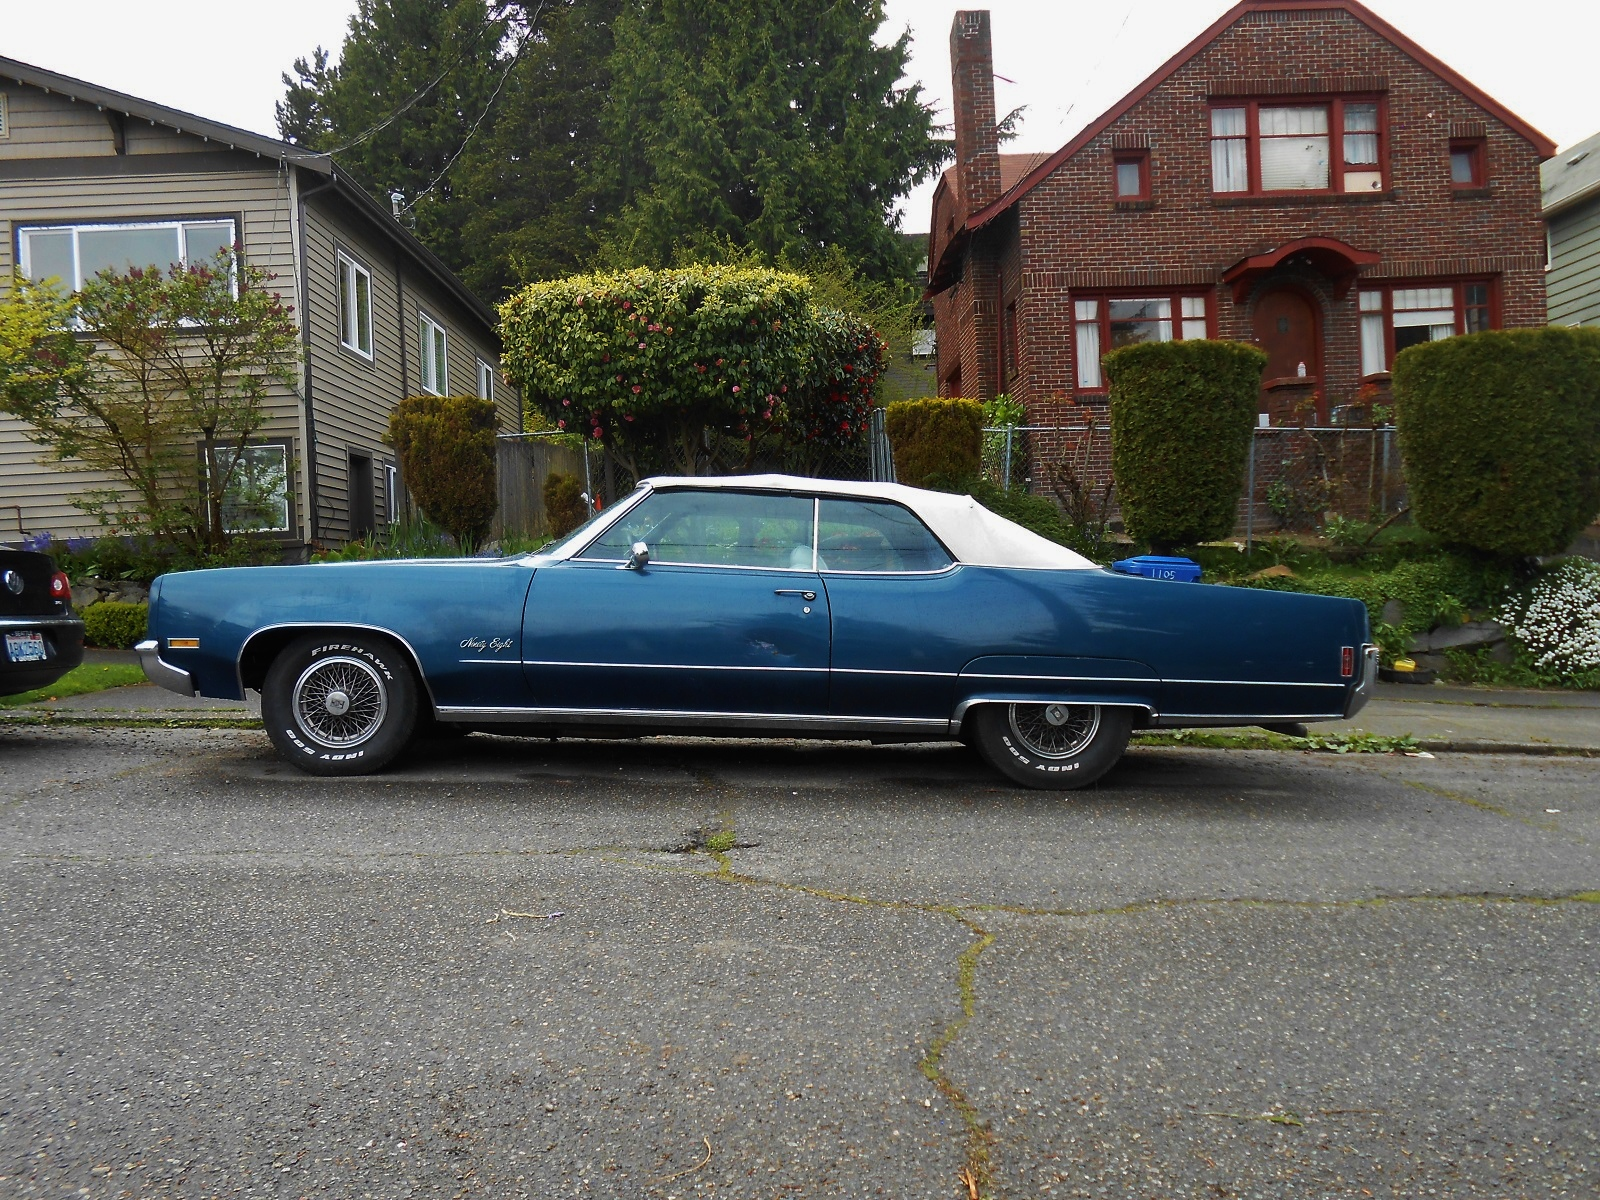 Seattle's Parked Cars: 1970 Oldsmobile 98 Convertible